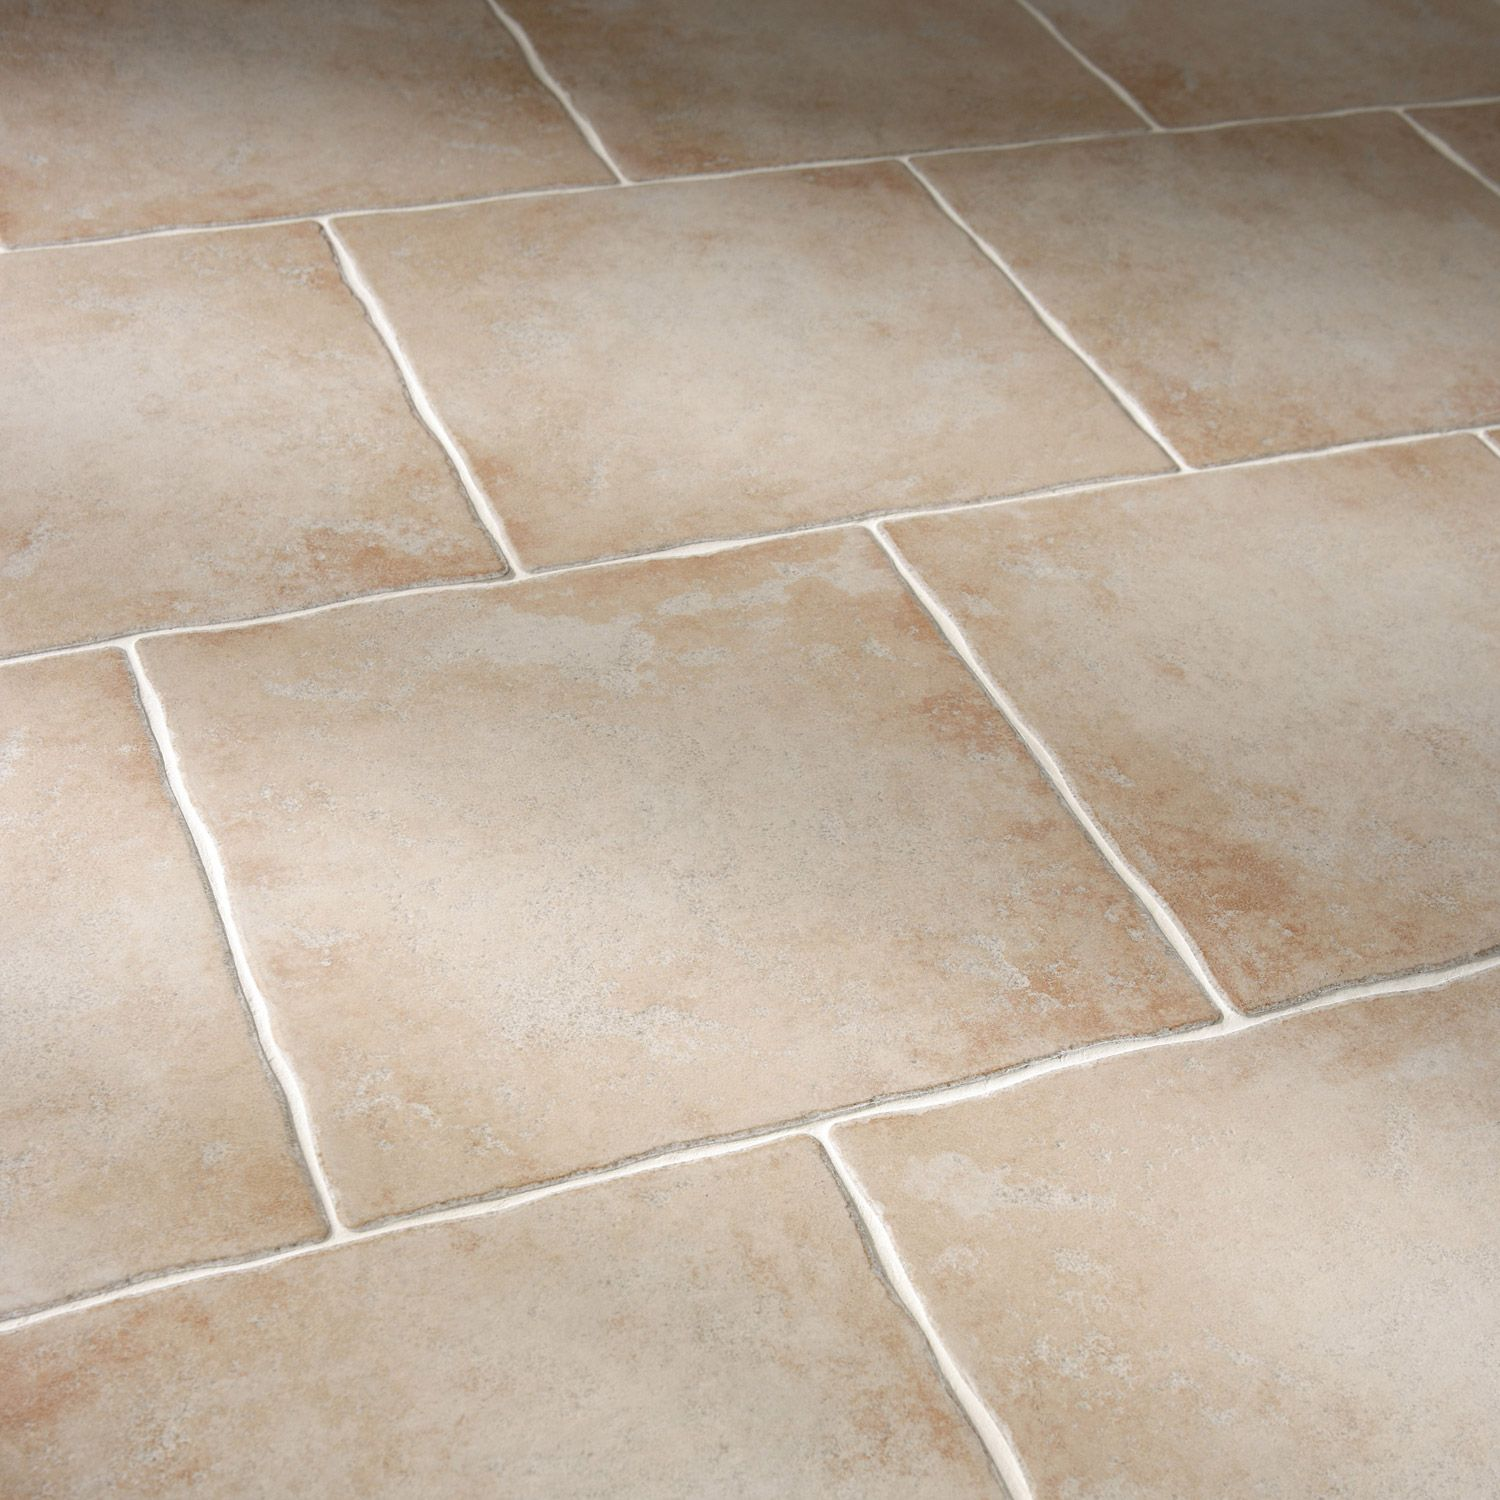 Carrelage int rieur grotte aero en gr s c rame maill rose 30 x 30 cm leroy merlin - Leroy merlin perigueux ...